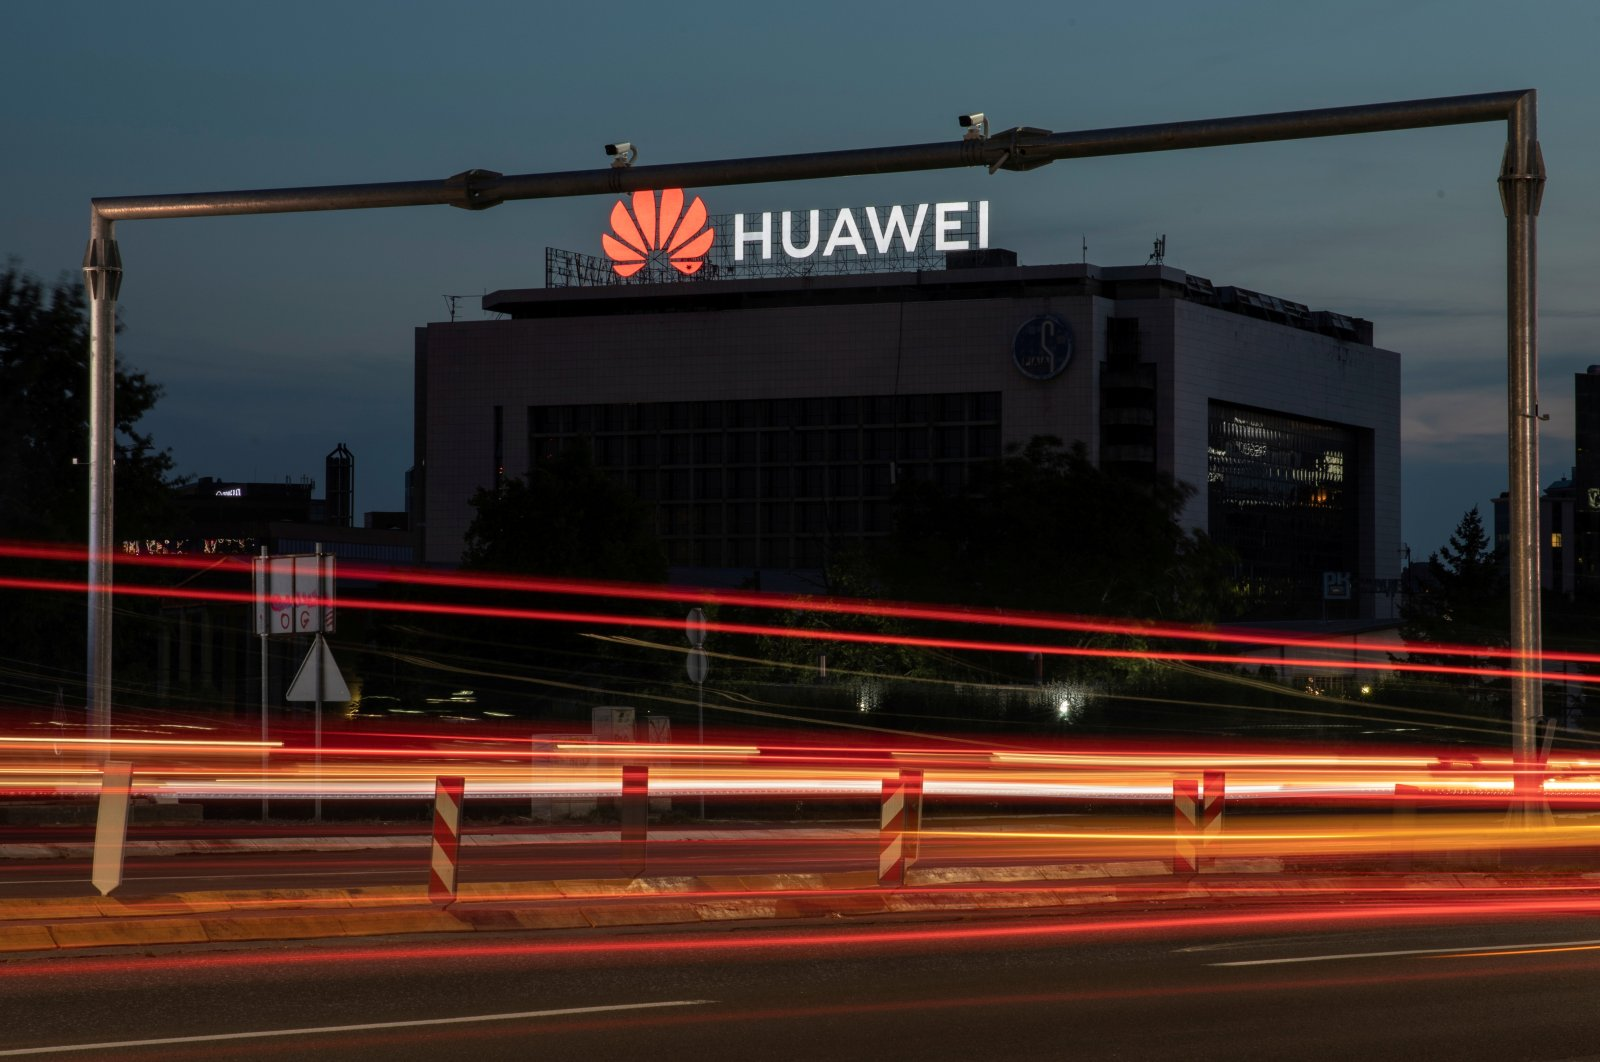 Surveillance cameras are seen in front of a Huawei logo in Belgrade, Serbia, Aug.11, 2020. (Reuters Photo)